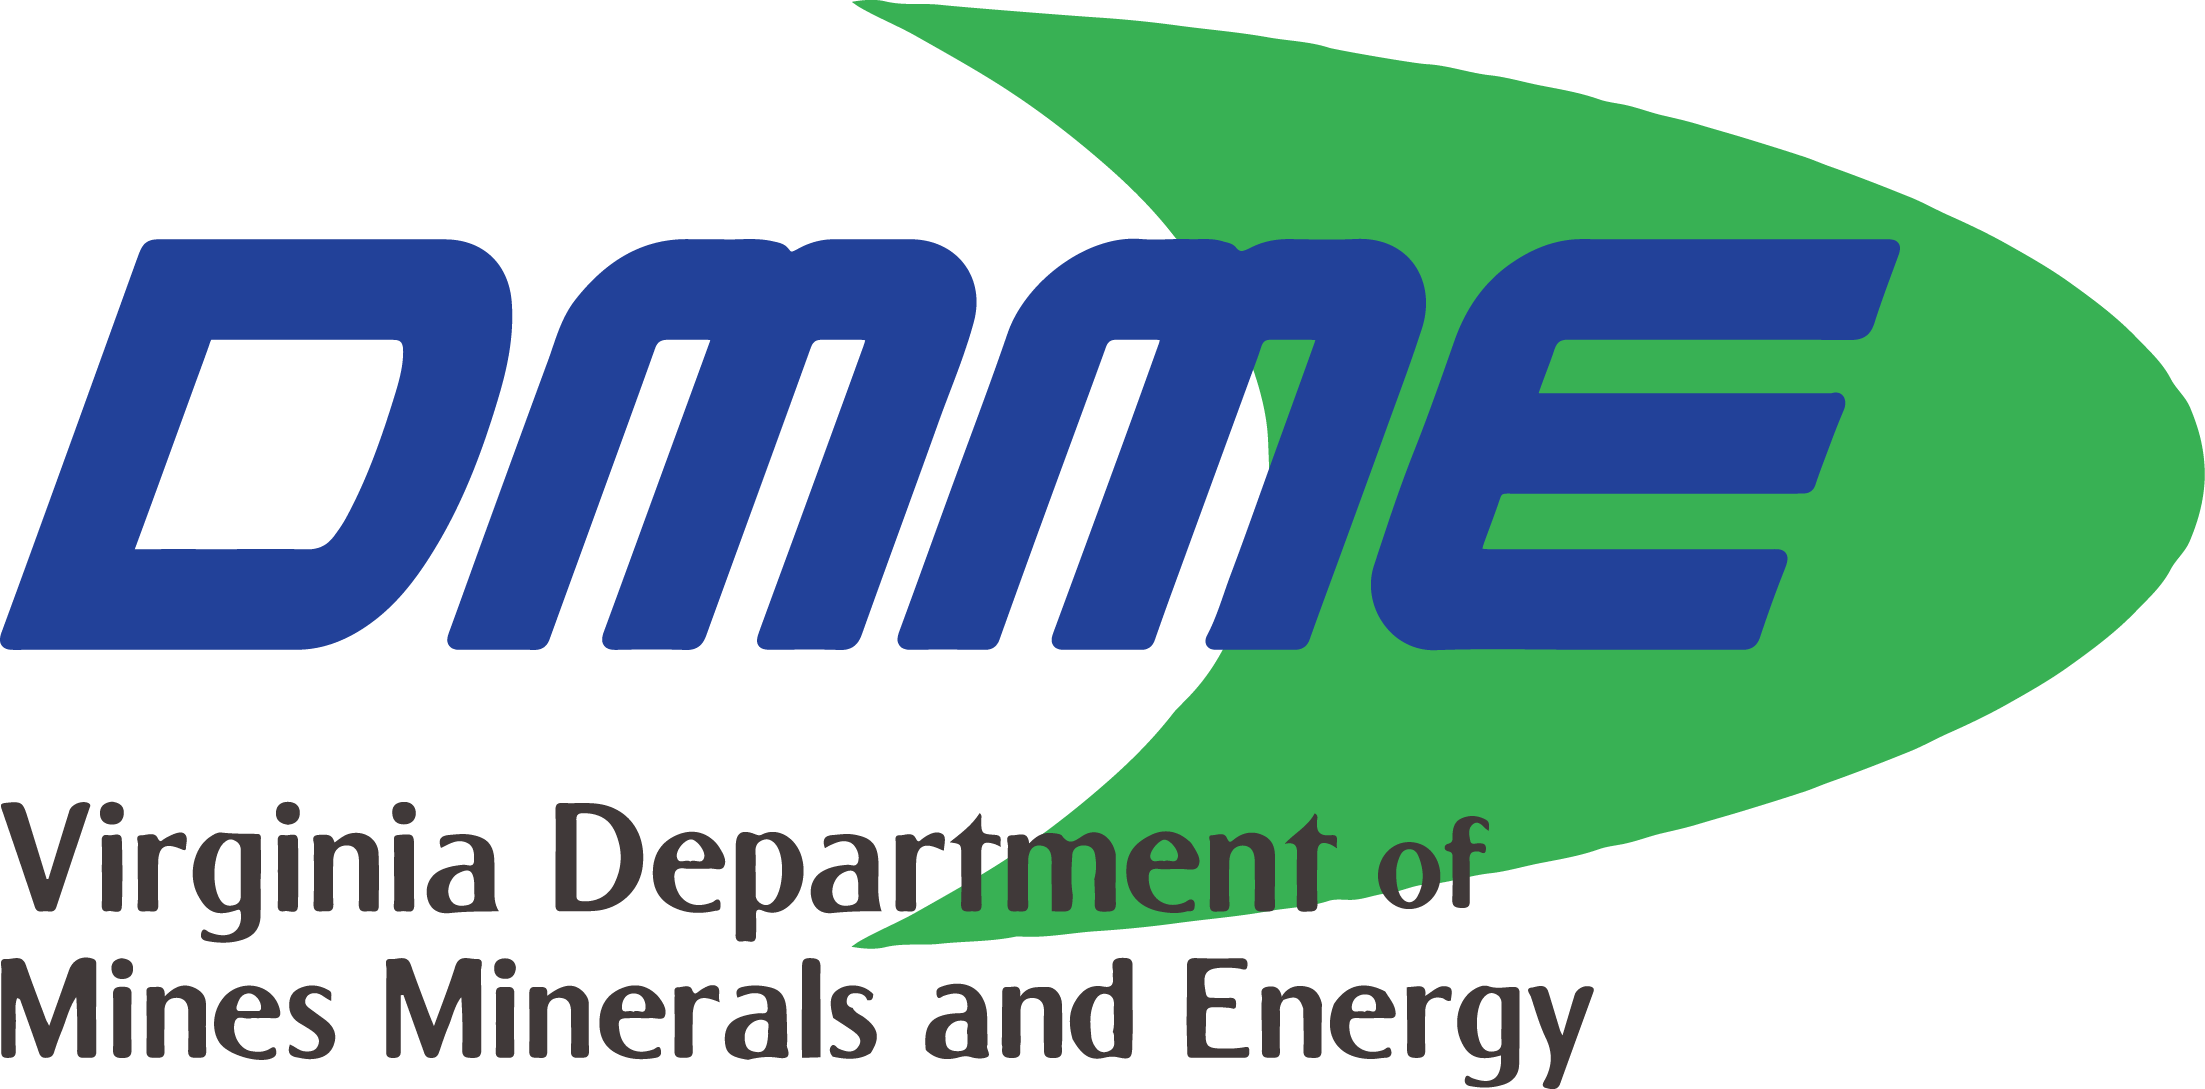 Virginia Department of Mines, Minerals and Energy